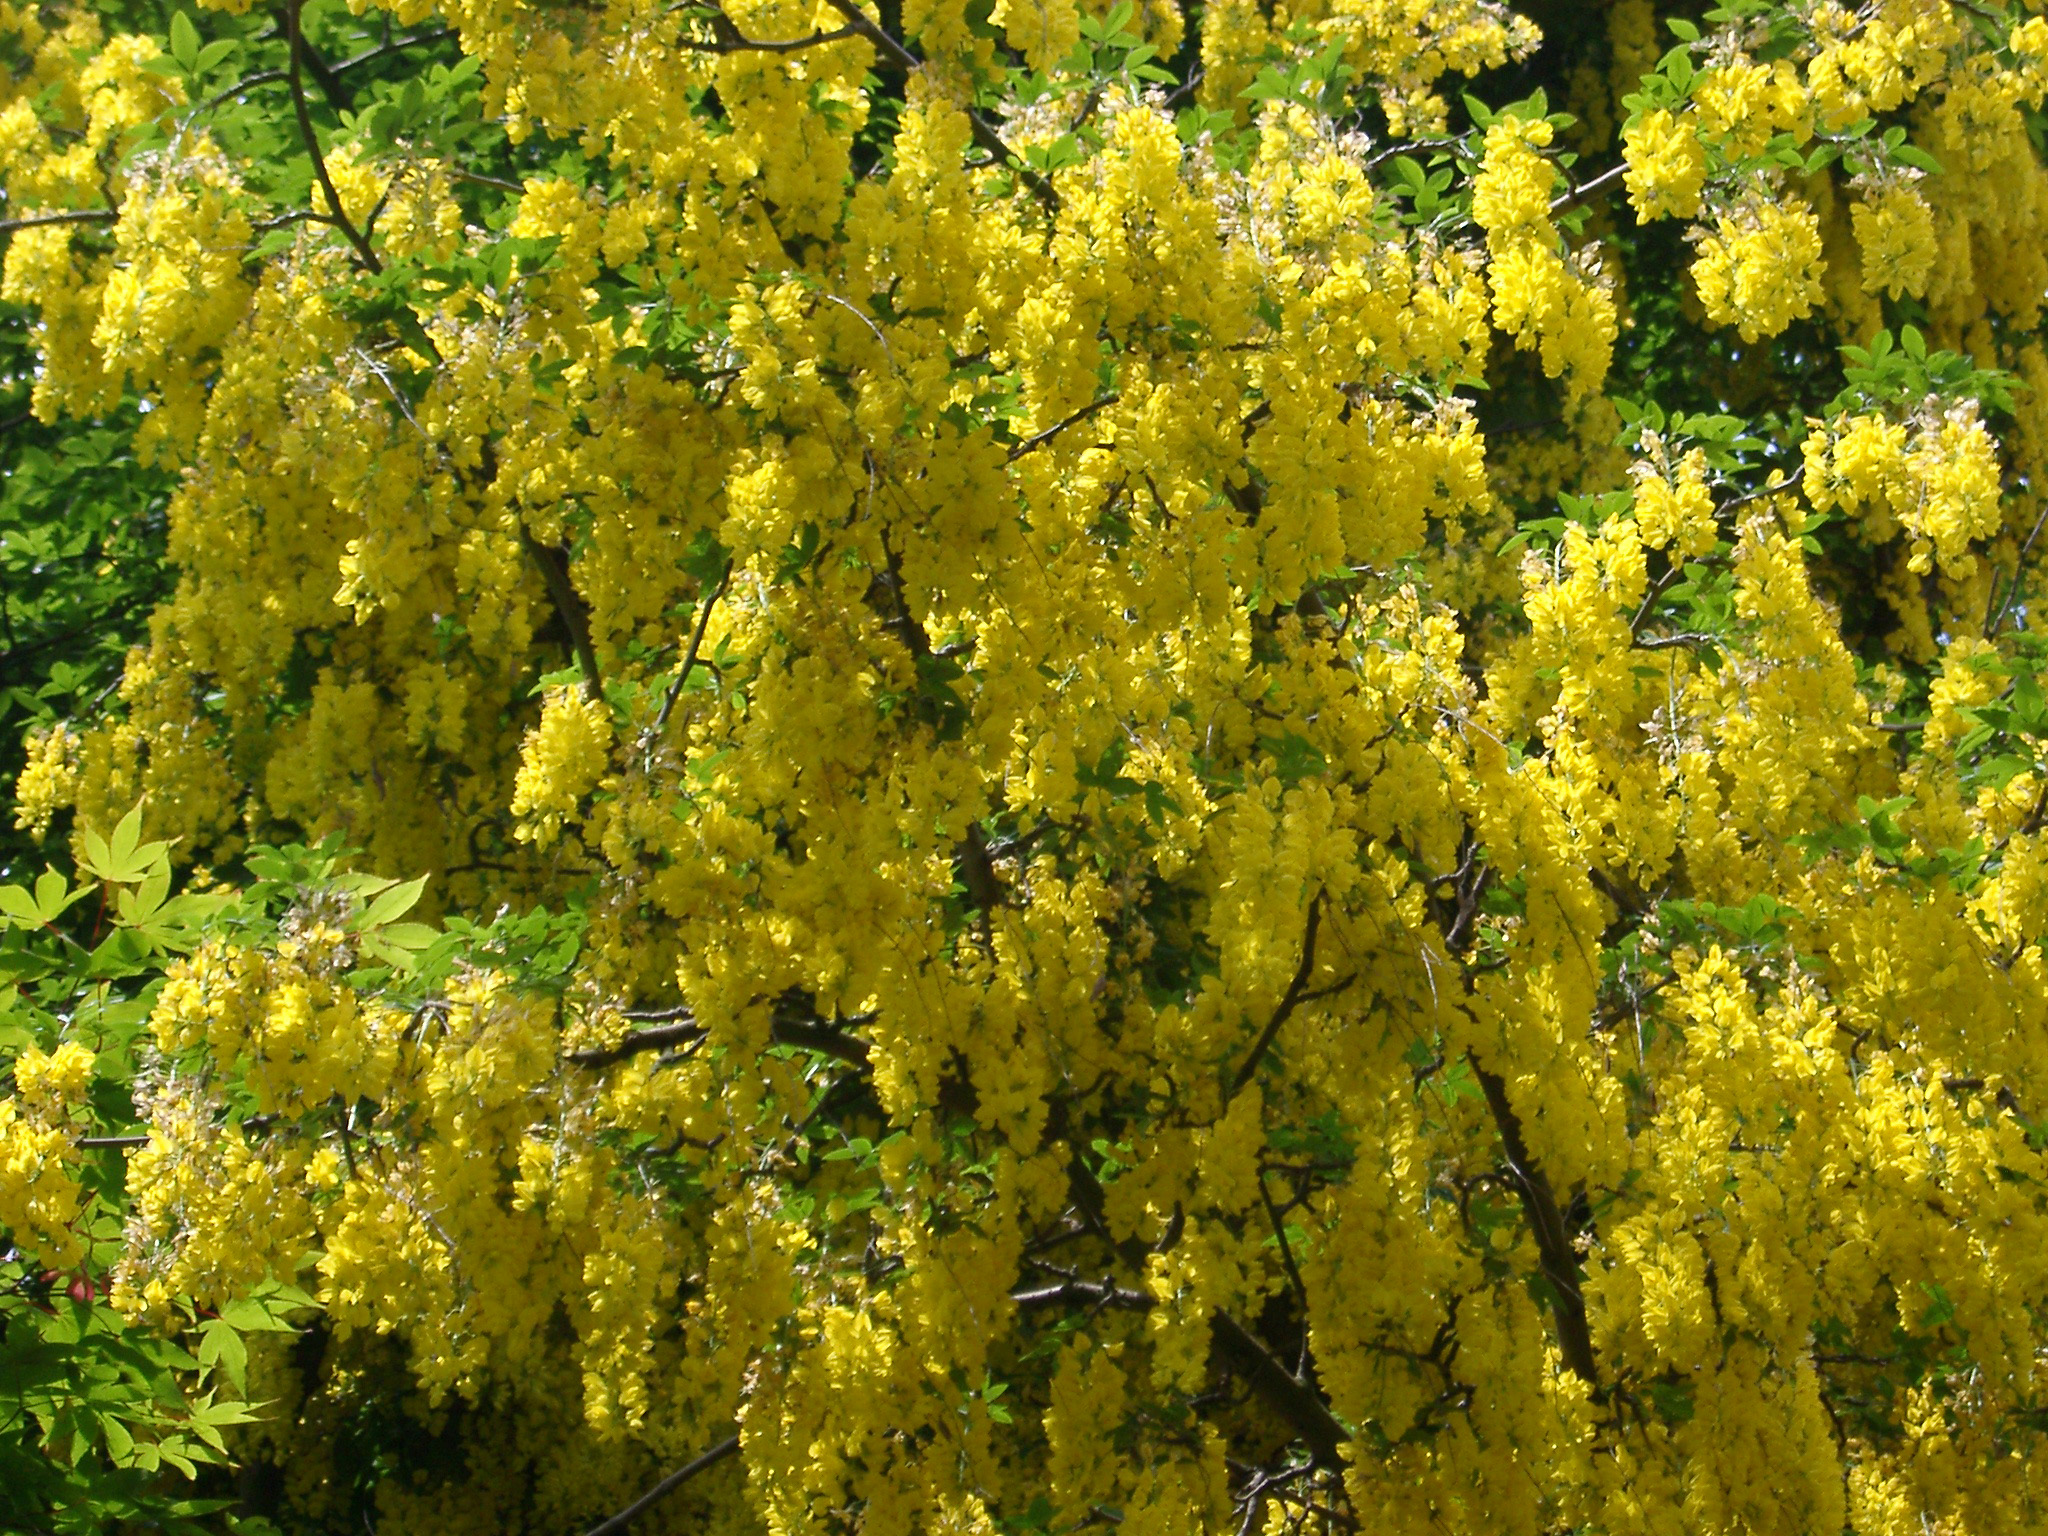 Botanical nature background of a colorful yellow laburnum tree in flower covered in hanging inflorescences